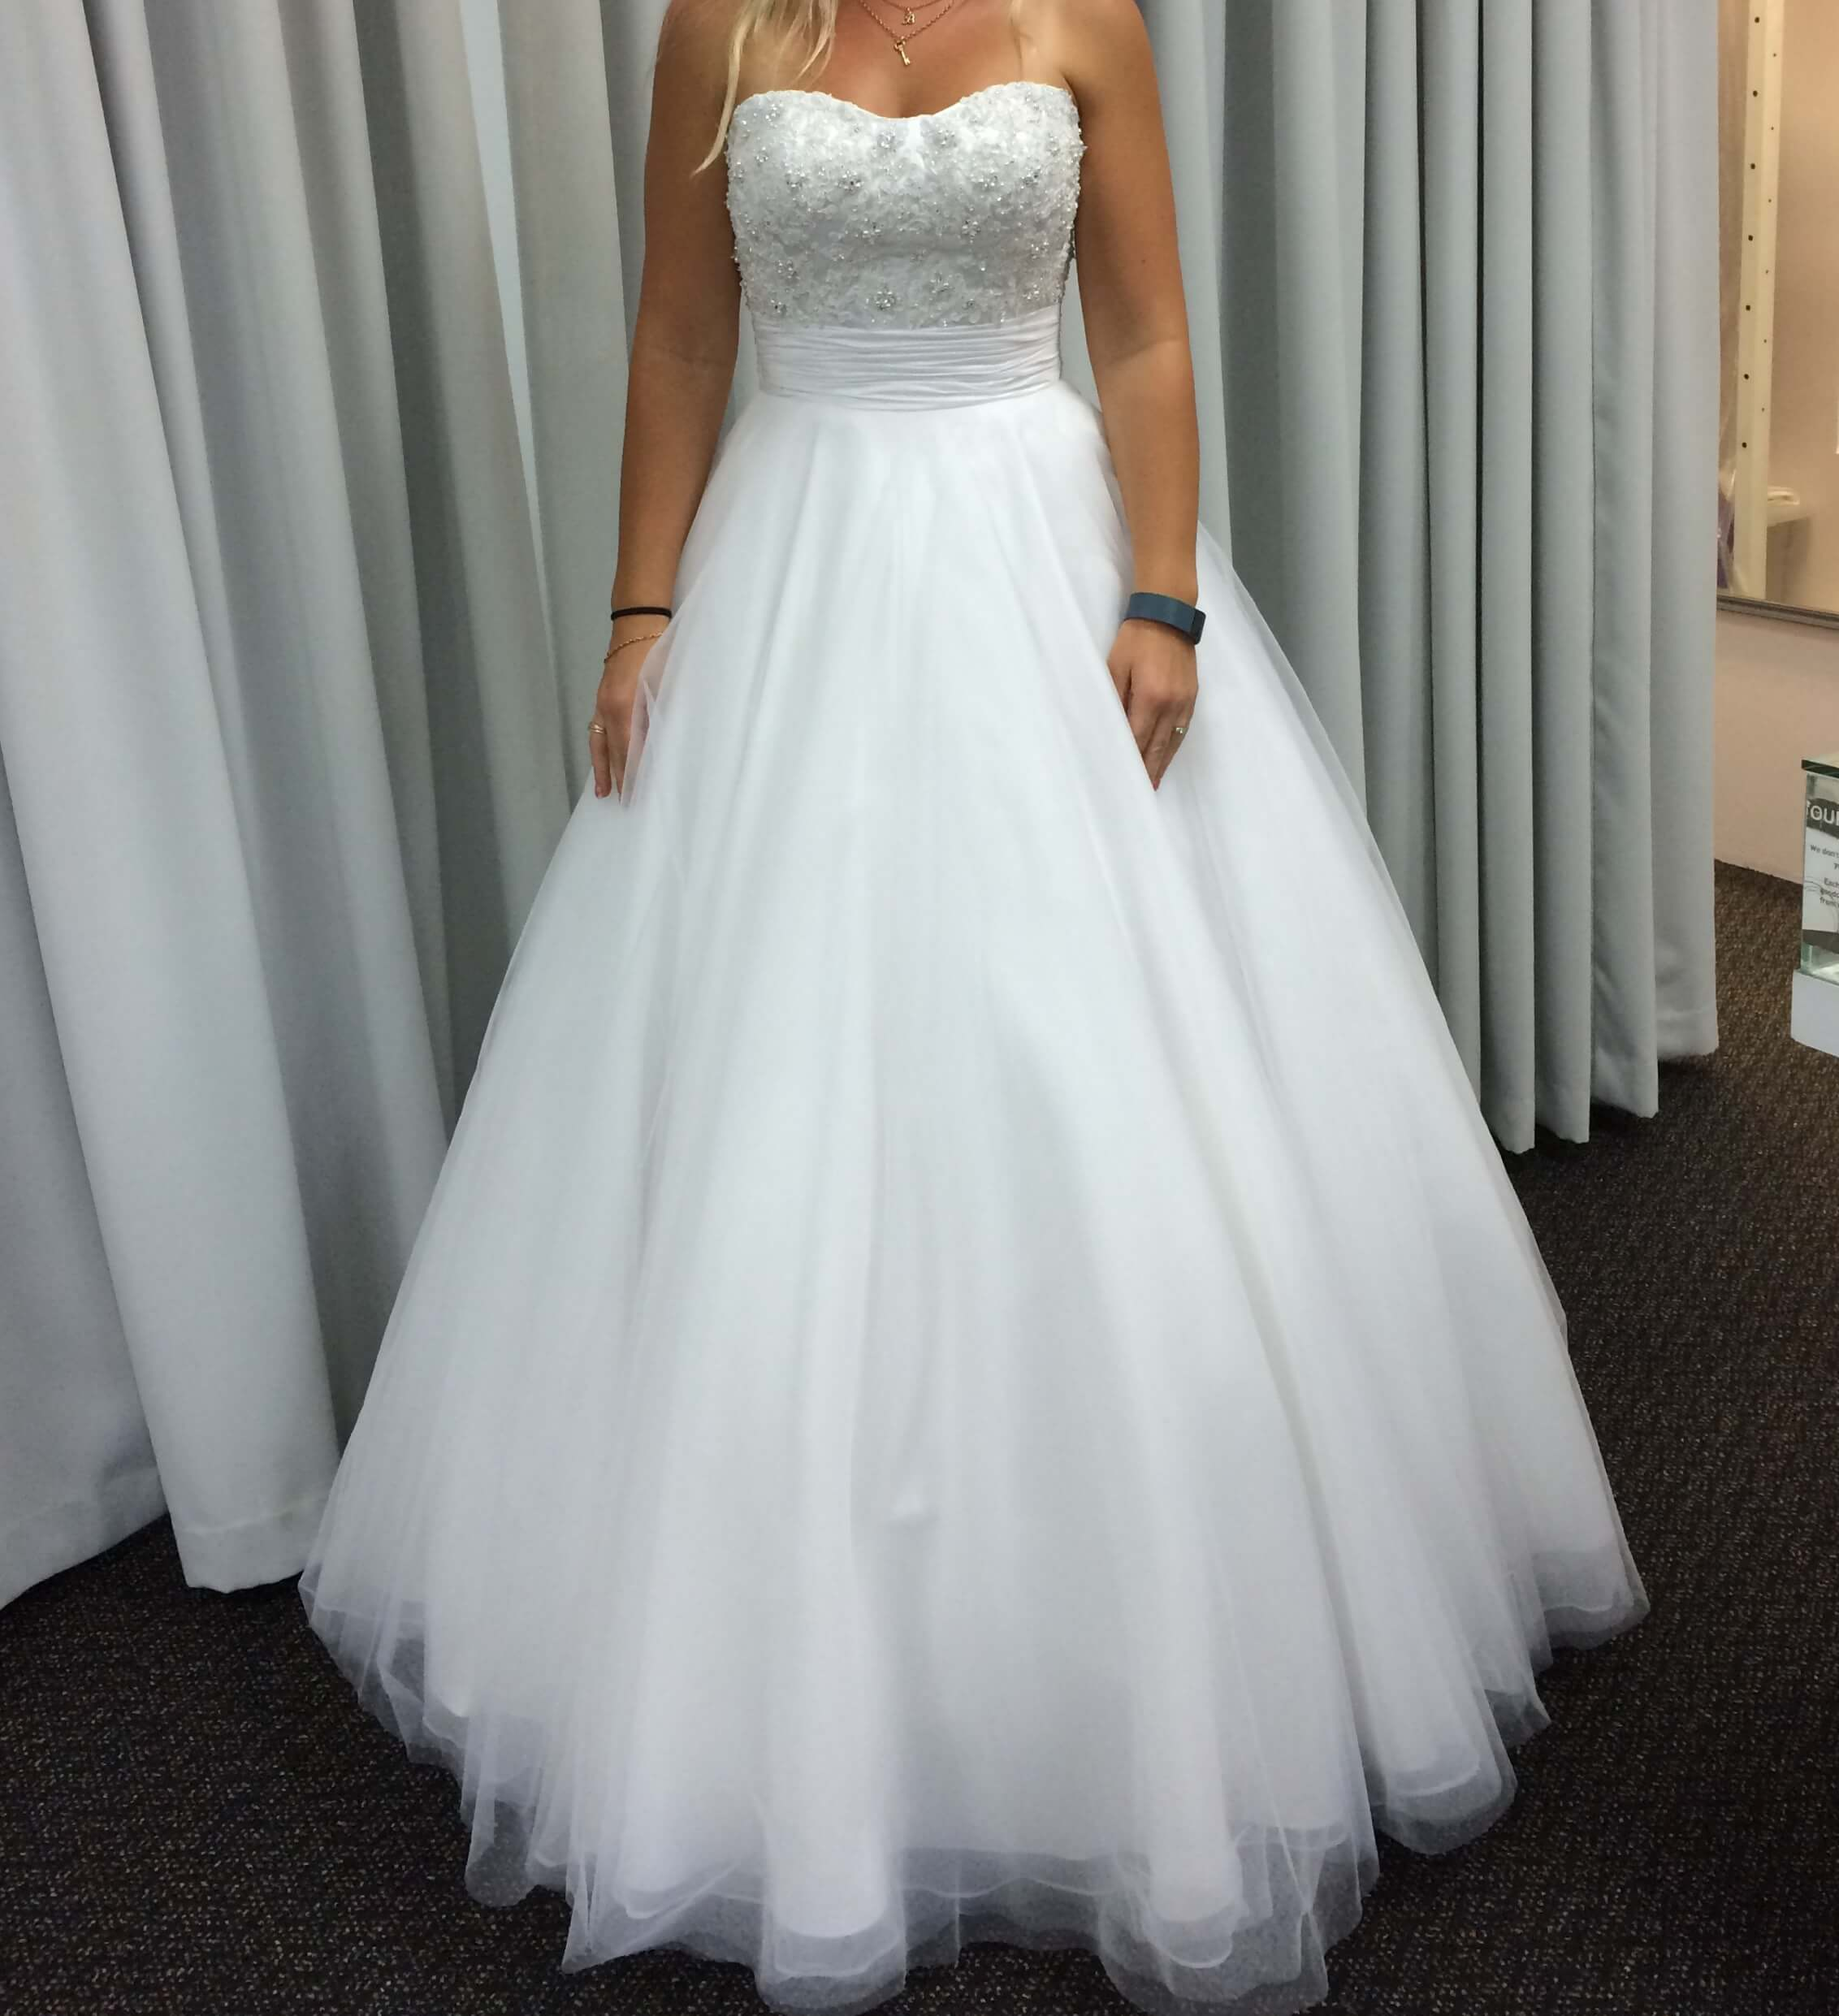 Angeline – Size 8 A-Line dress | Second hand wedding dresses Currambine - Size 8